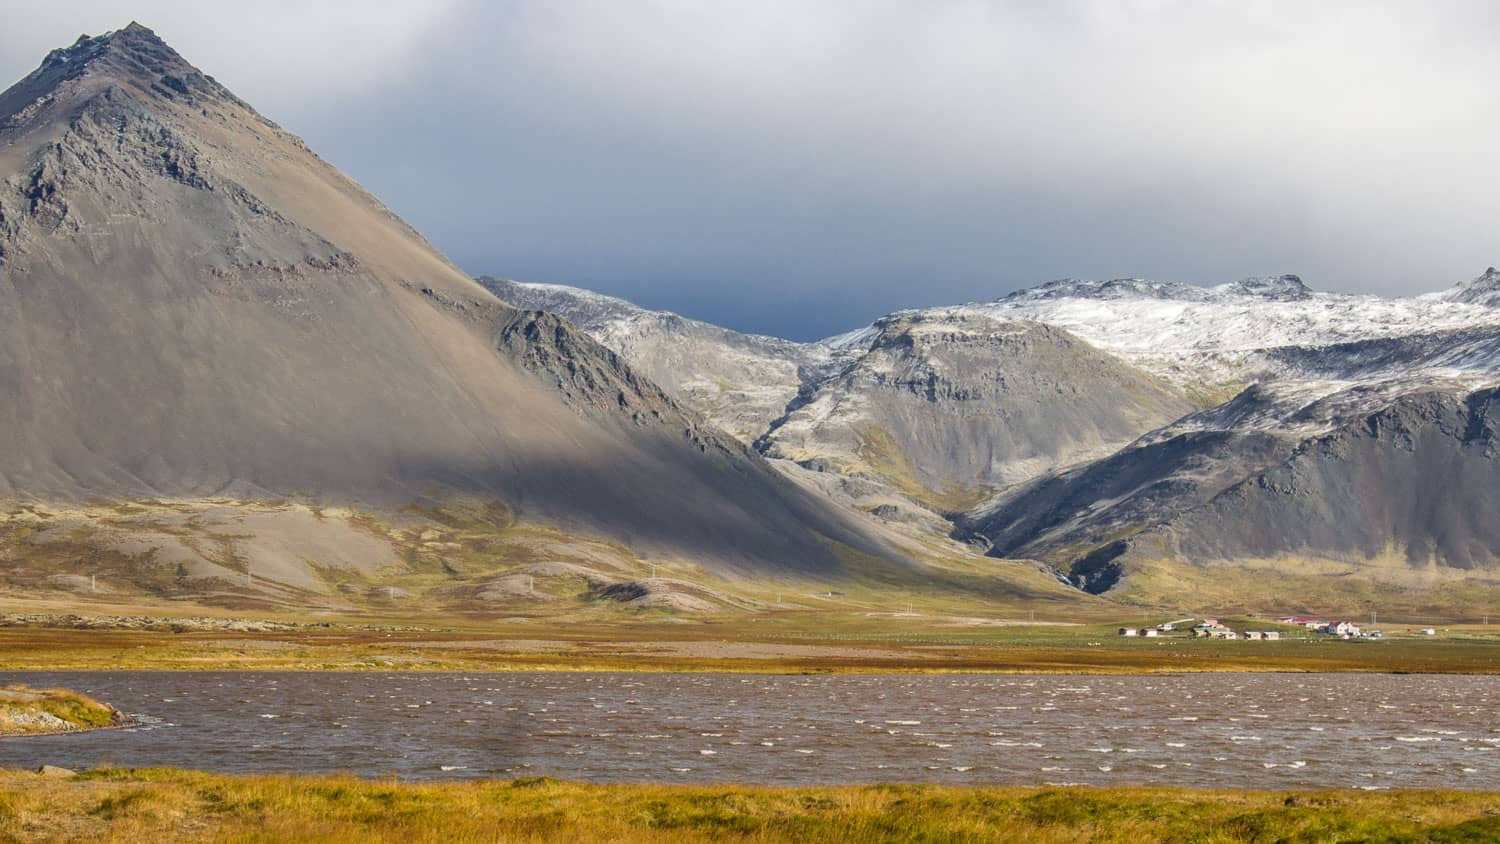 Iceland trip cost breakdown - we share our Iceland road trip budget